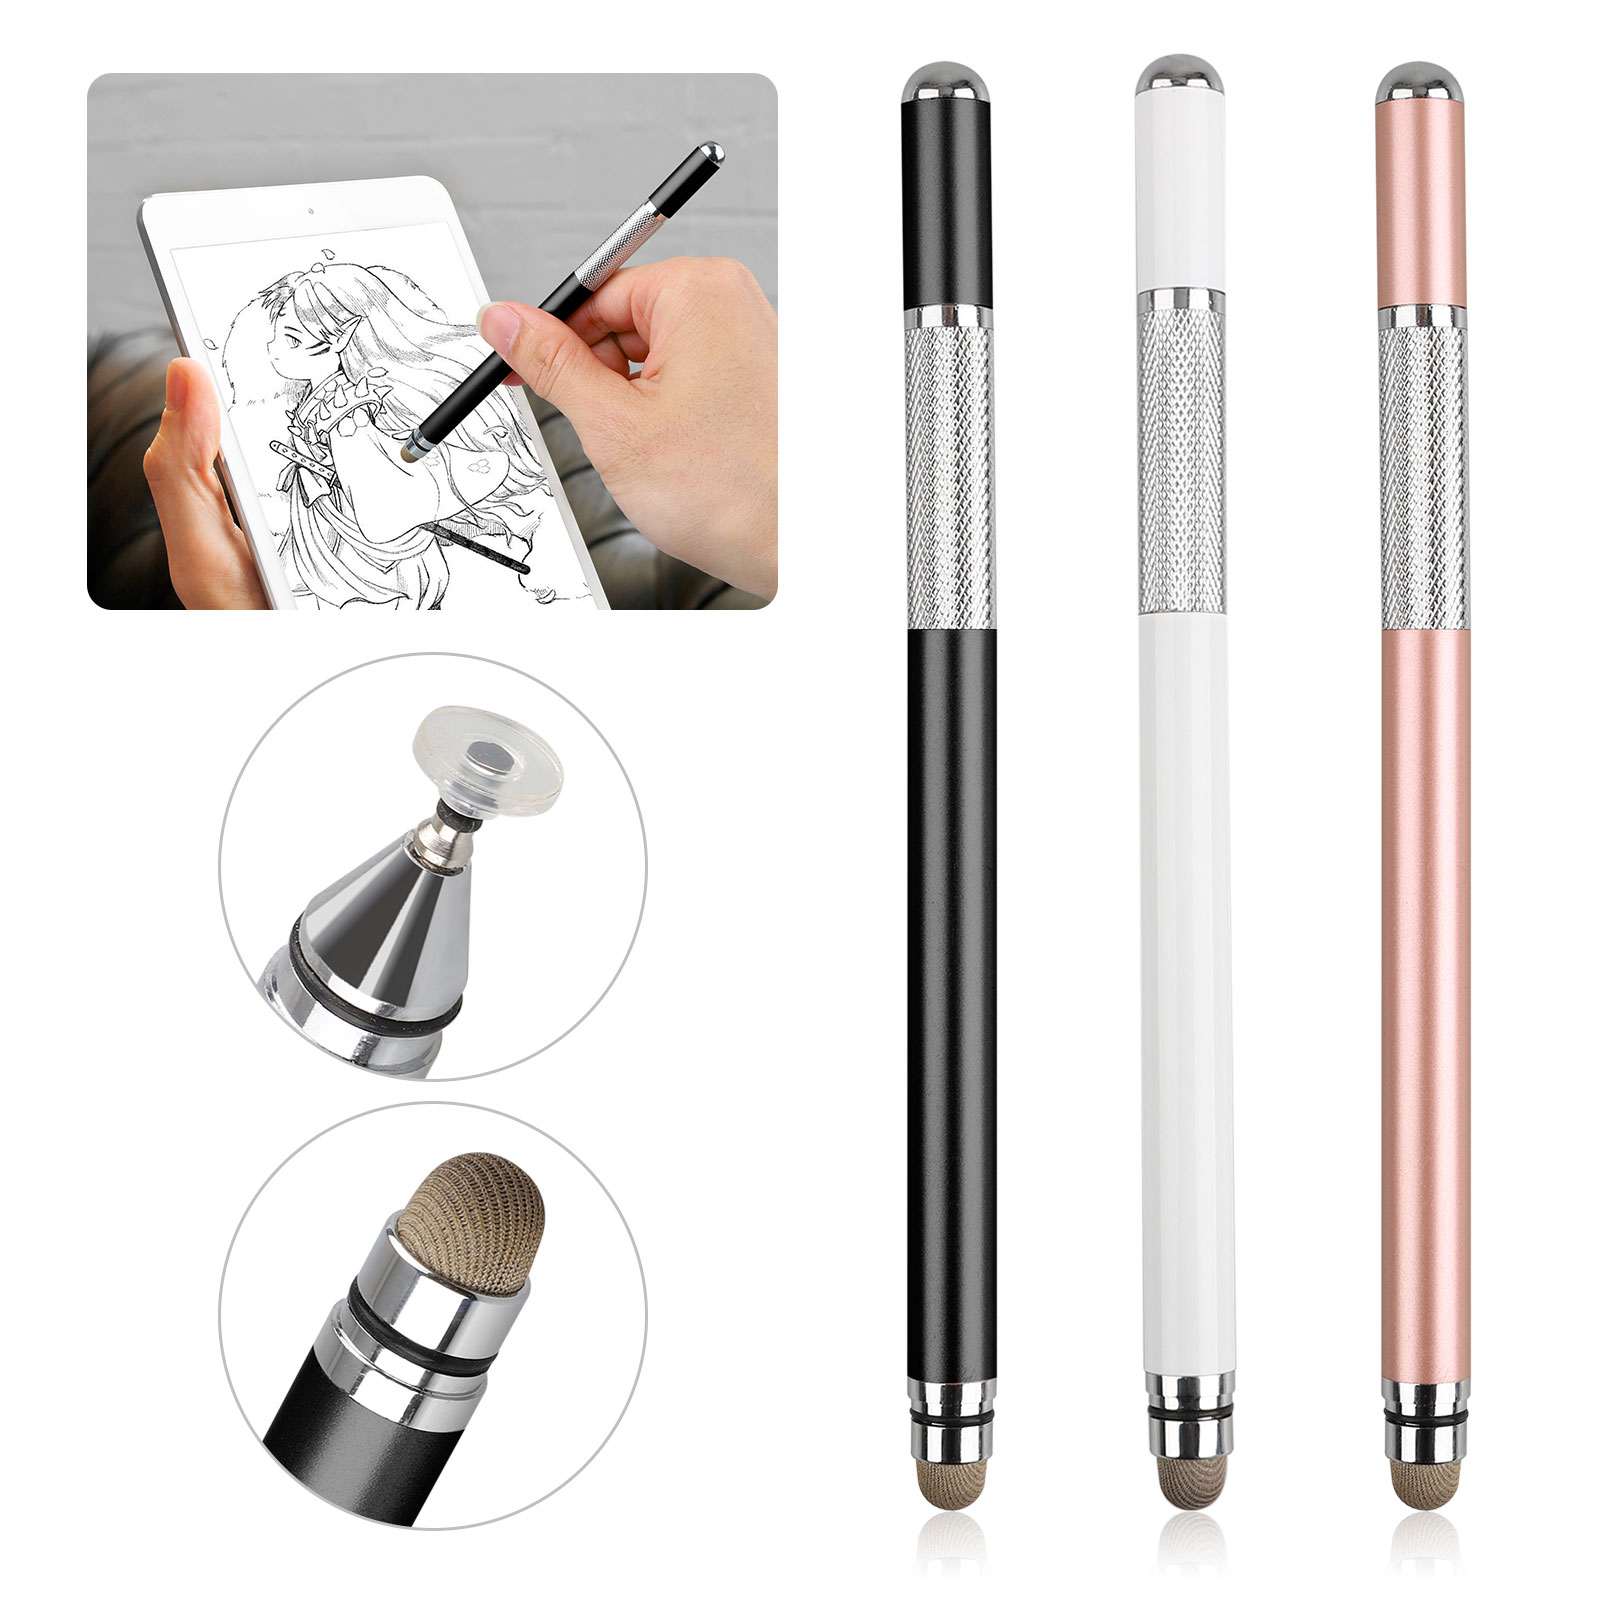 Stylus Pen for Touch Screen, EEEKit Replacement Fine Point Smart Pencil Disc Fiber Stylus Pen Compatible with IOS, Kindle, Tablet, Galaxy & More